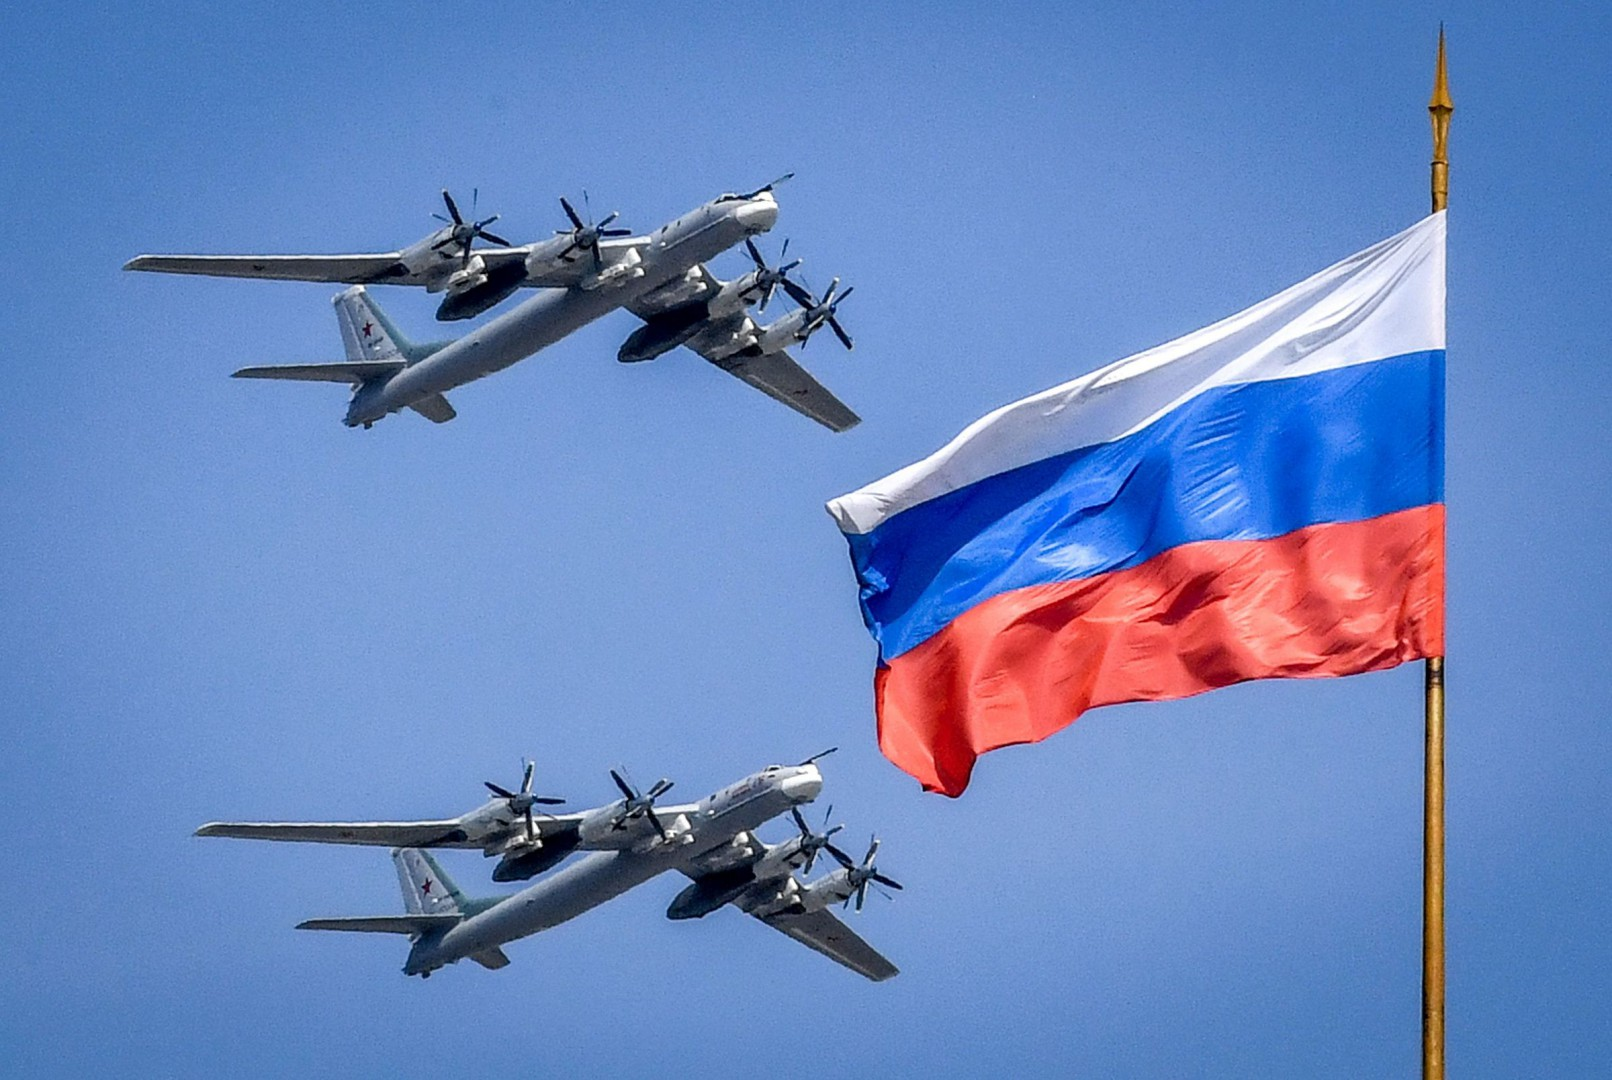 Russian Tupolev Tu-95 turboprop-powered strategic bombers fly above the Kremlin during a rehearsal for the Victory Day military parade in Moscow on May 4, 2018. Russia celebrates the 73rd anniversary of the 1945 victory over Nazi Germany on May 9.  / AFP PHOTO / Yuri KADOBNOV